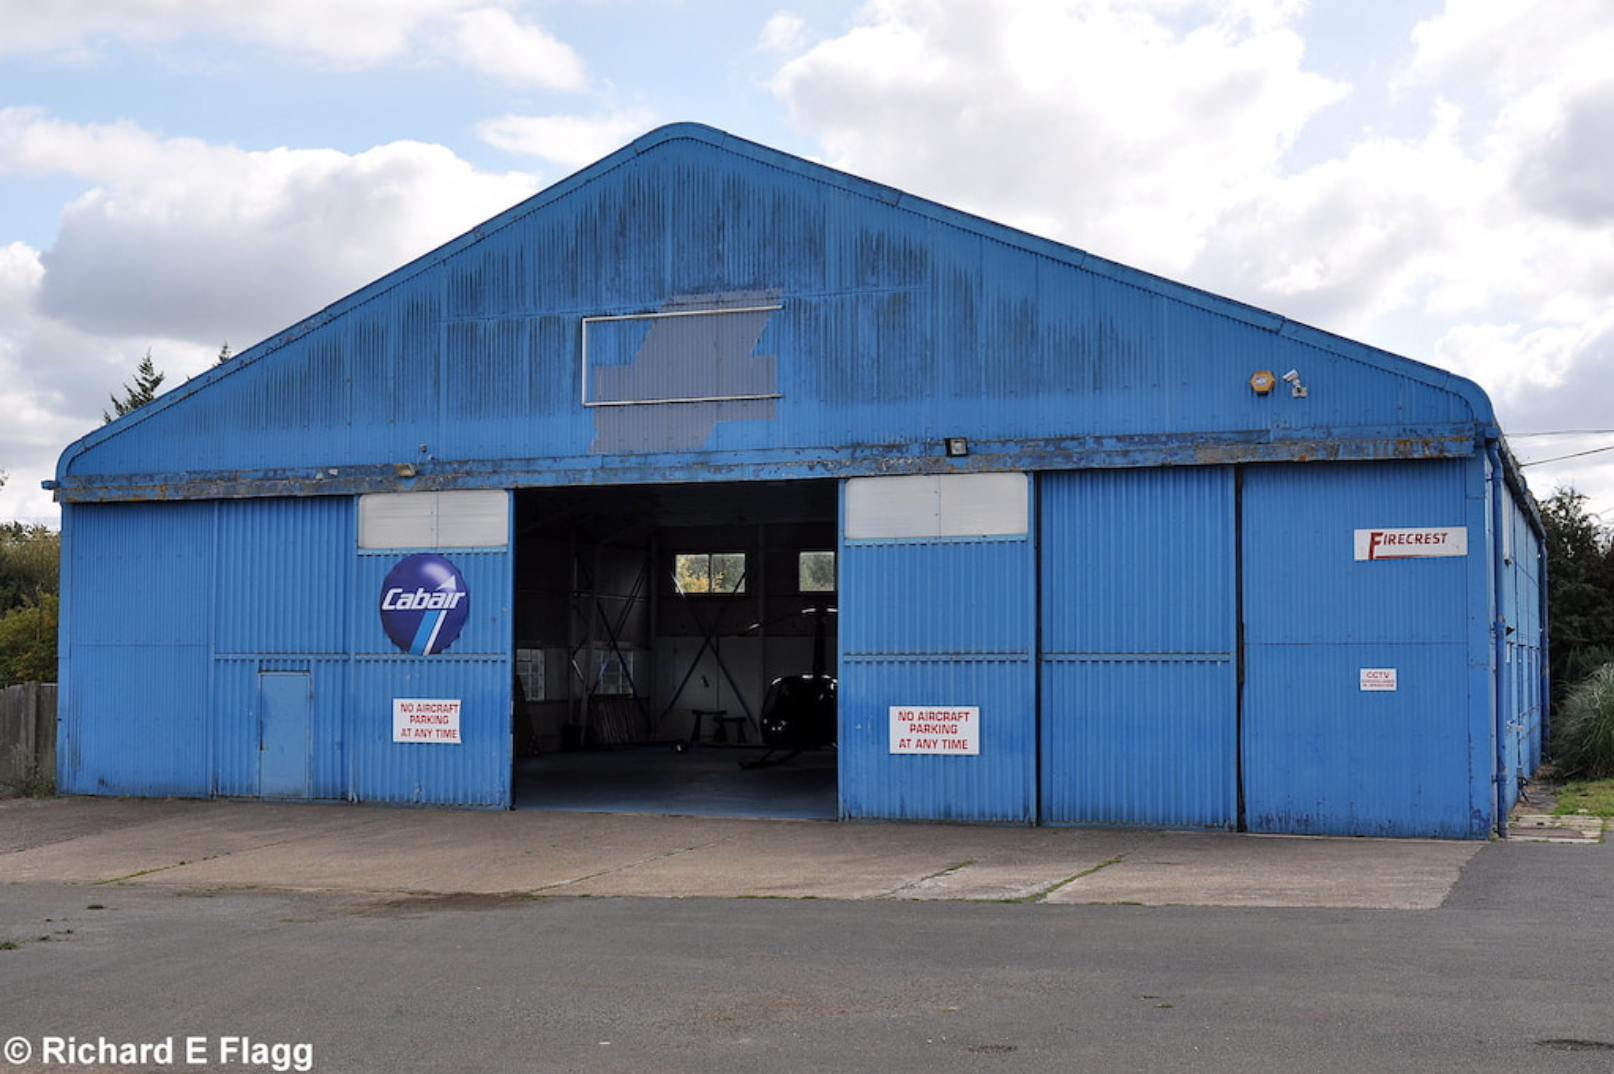 006Coseley Hangar (C.1969) - 11 September 2009.png